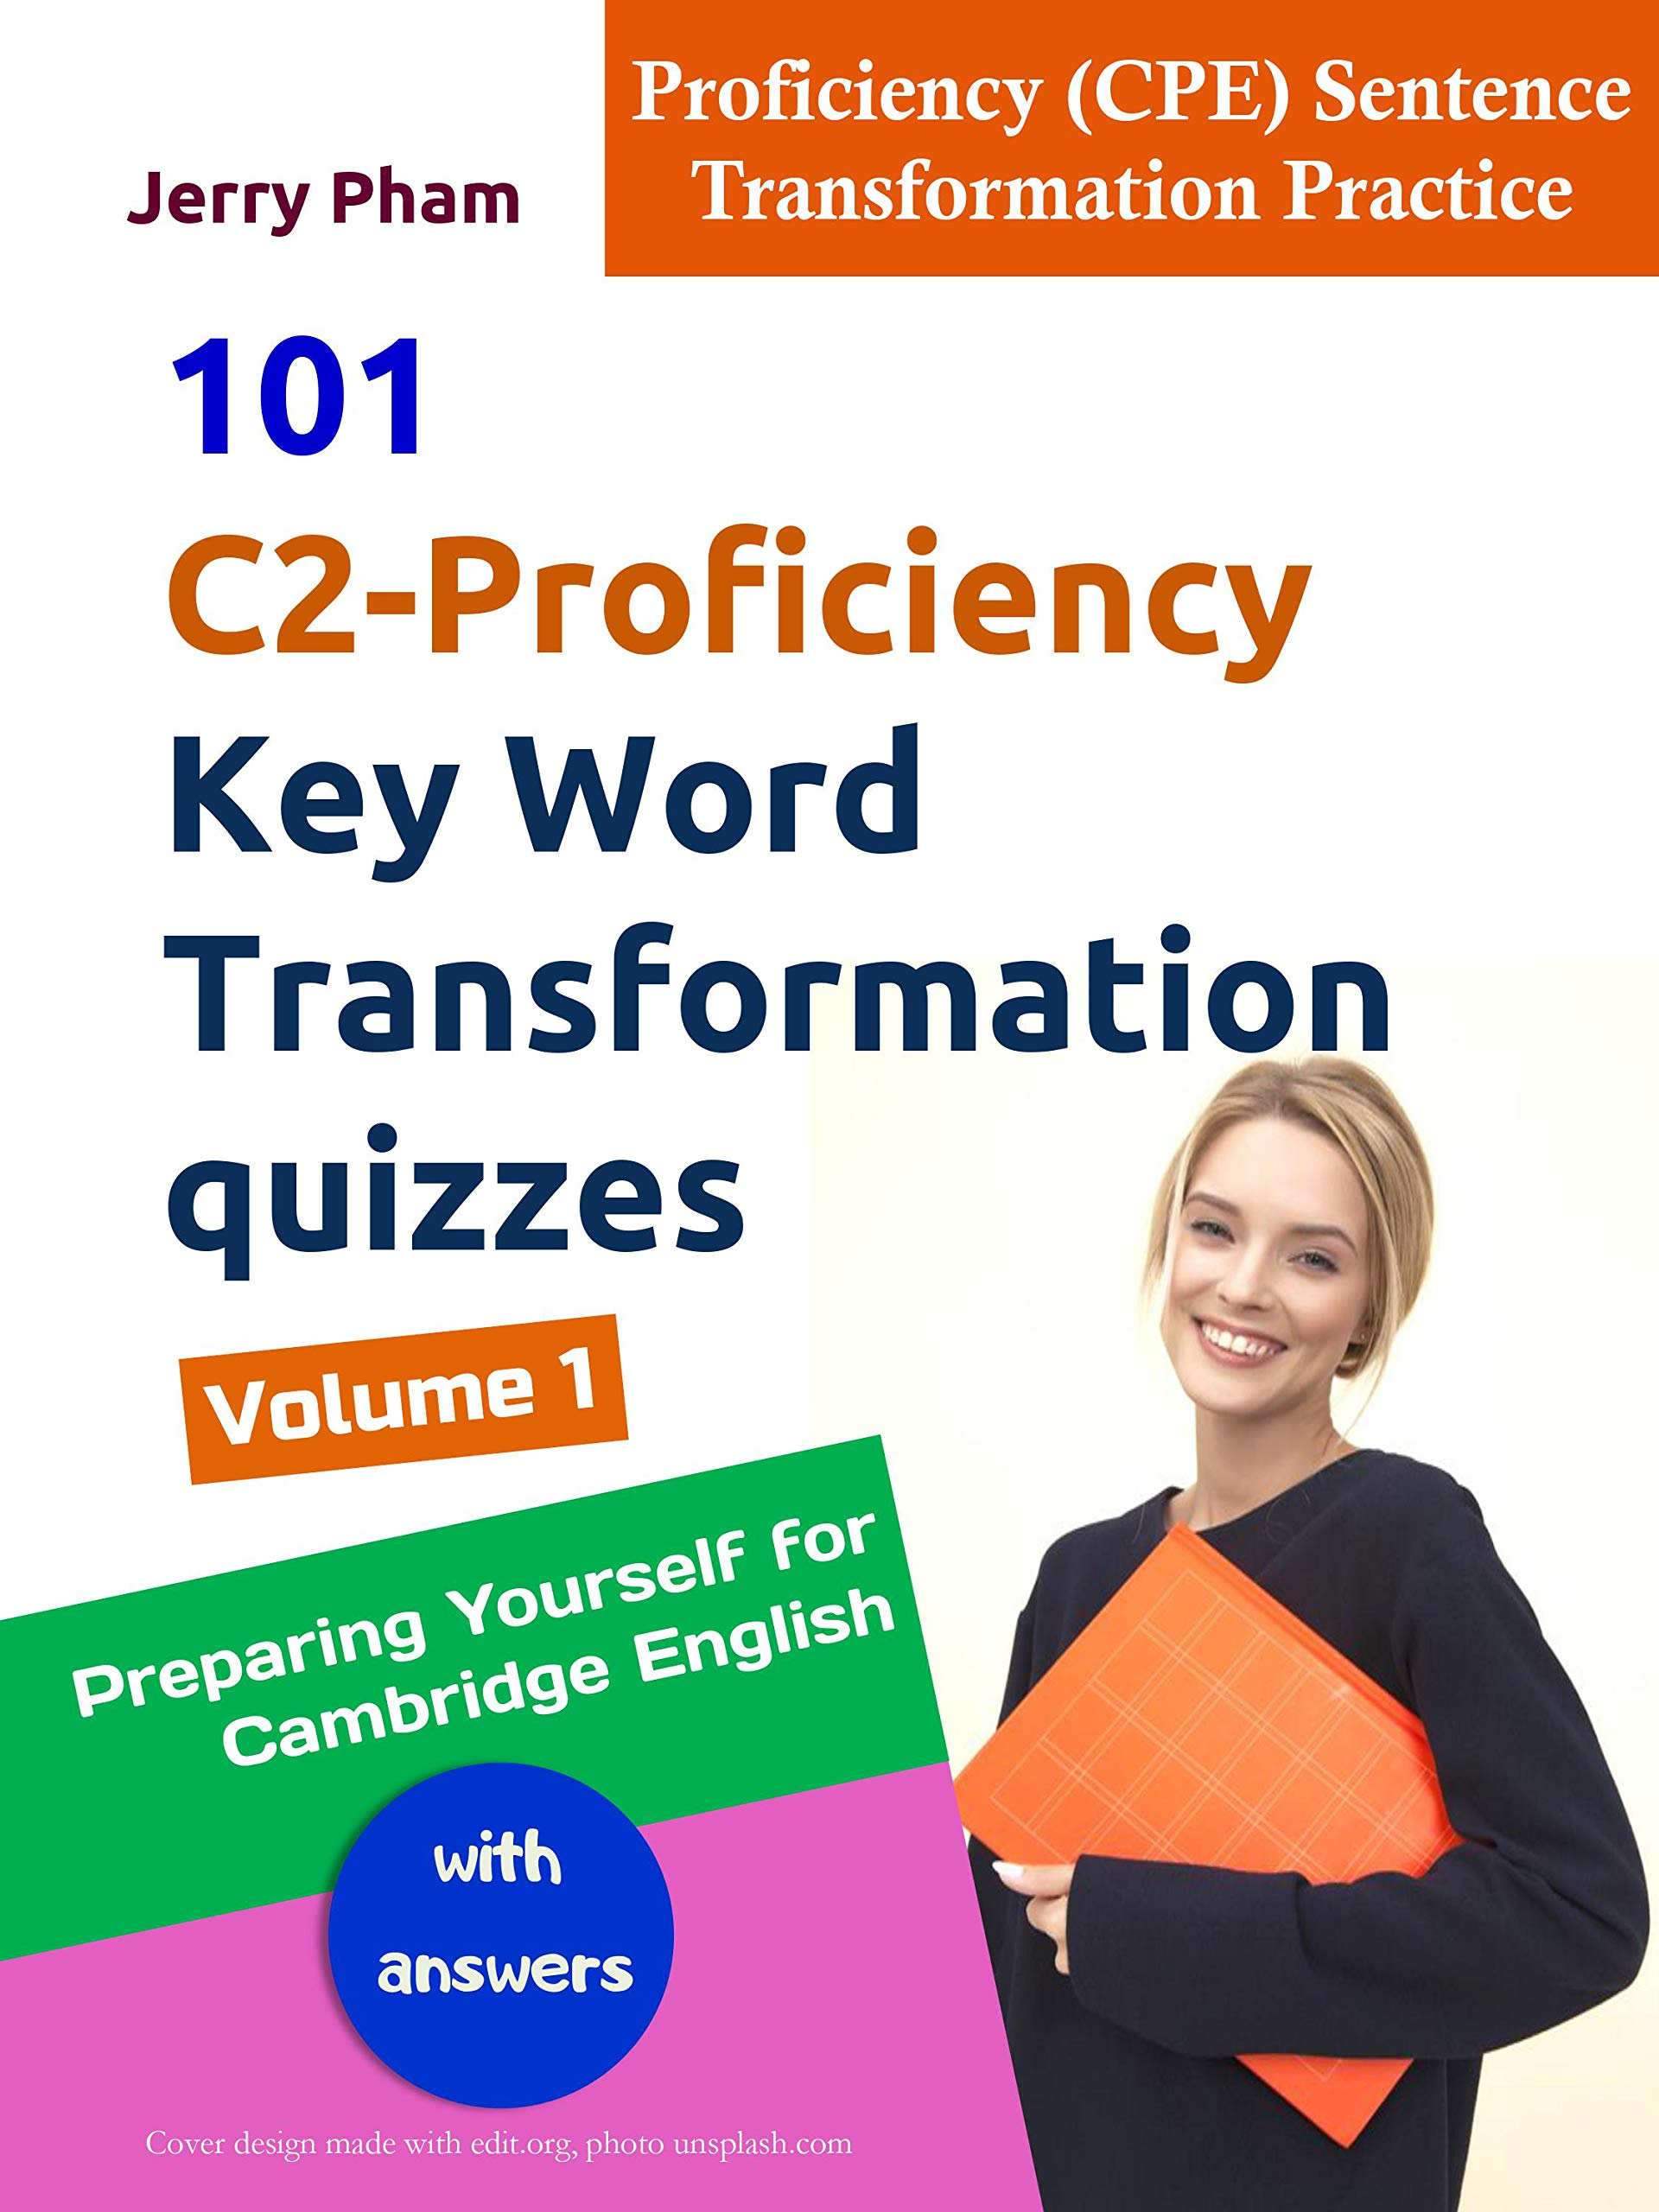 Cambridge English: C2 Proficiency (CPE) 101 Key Word Transformations quizzes - Volume 1: with answers